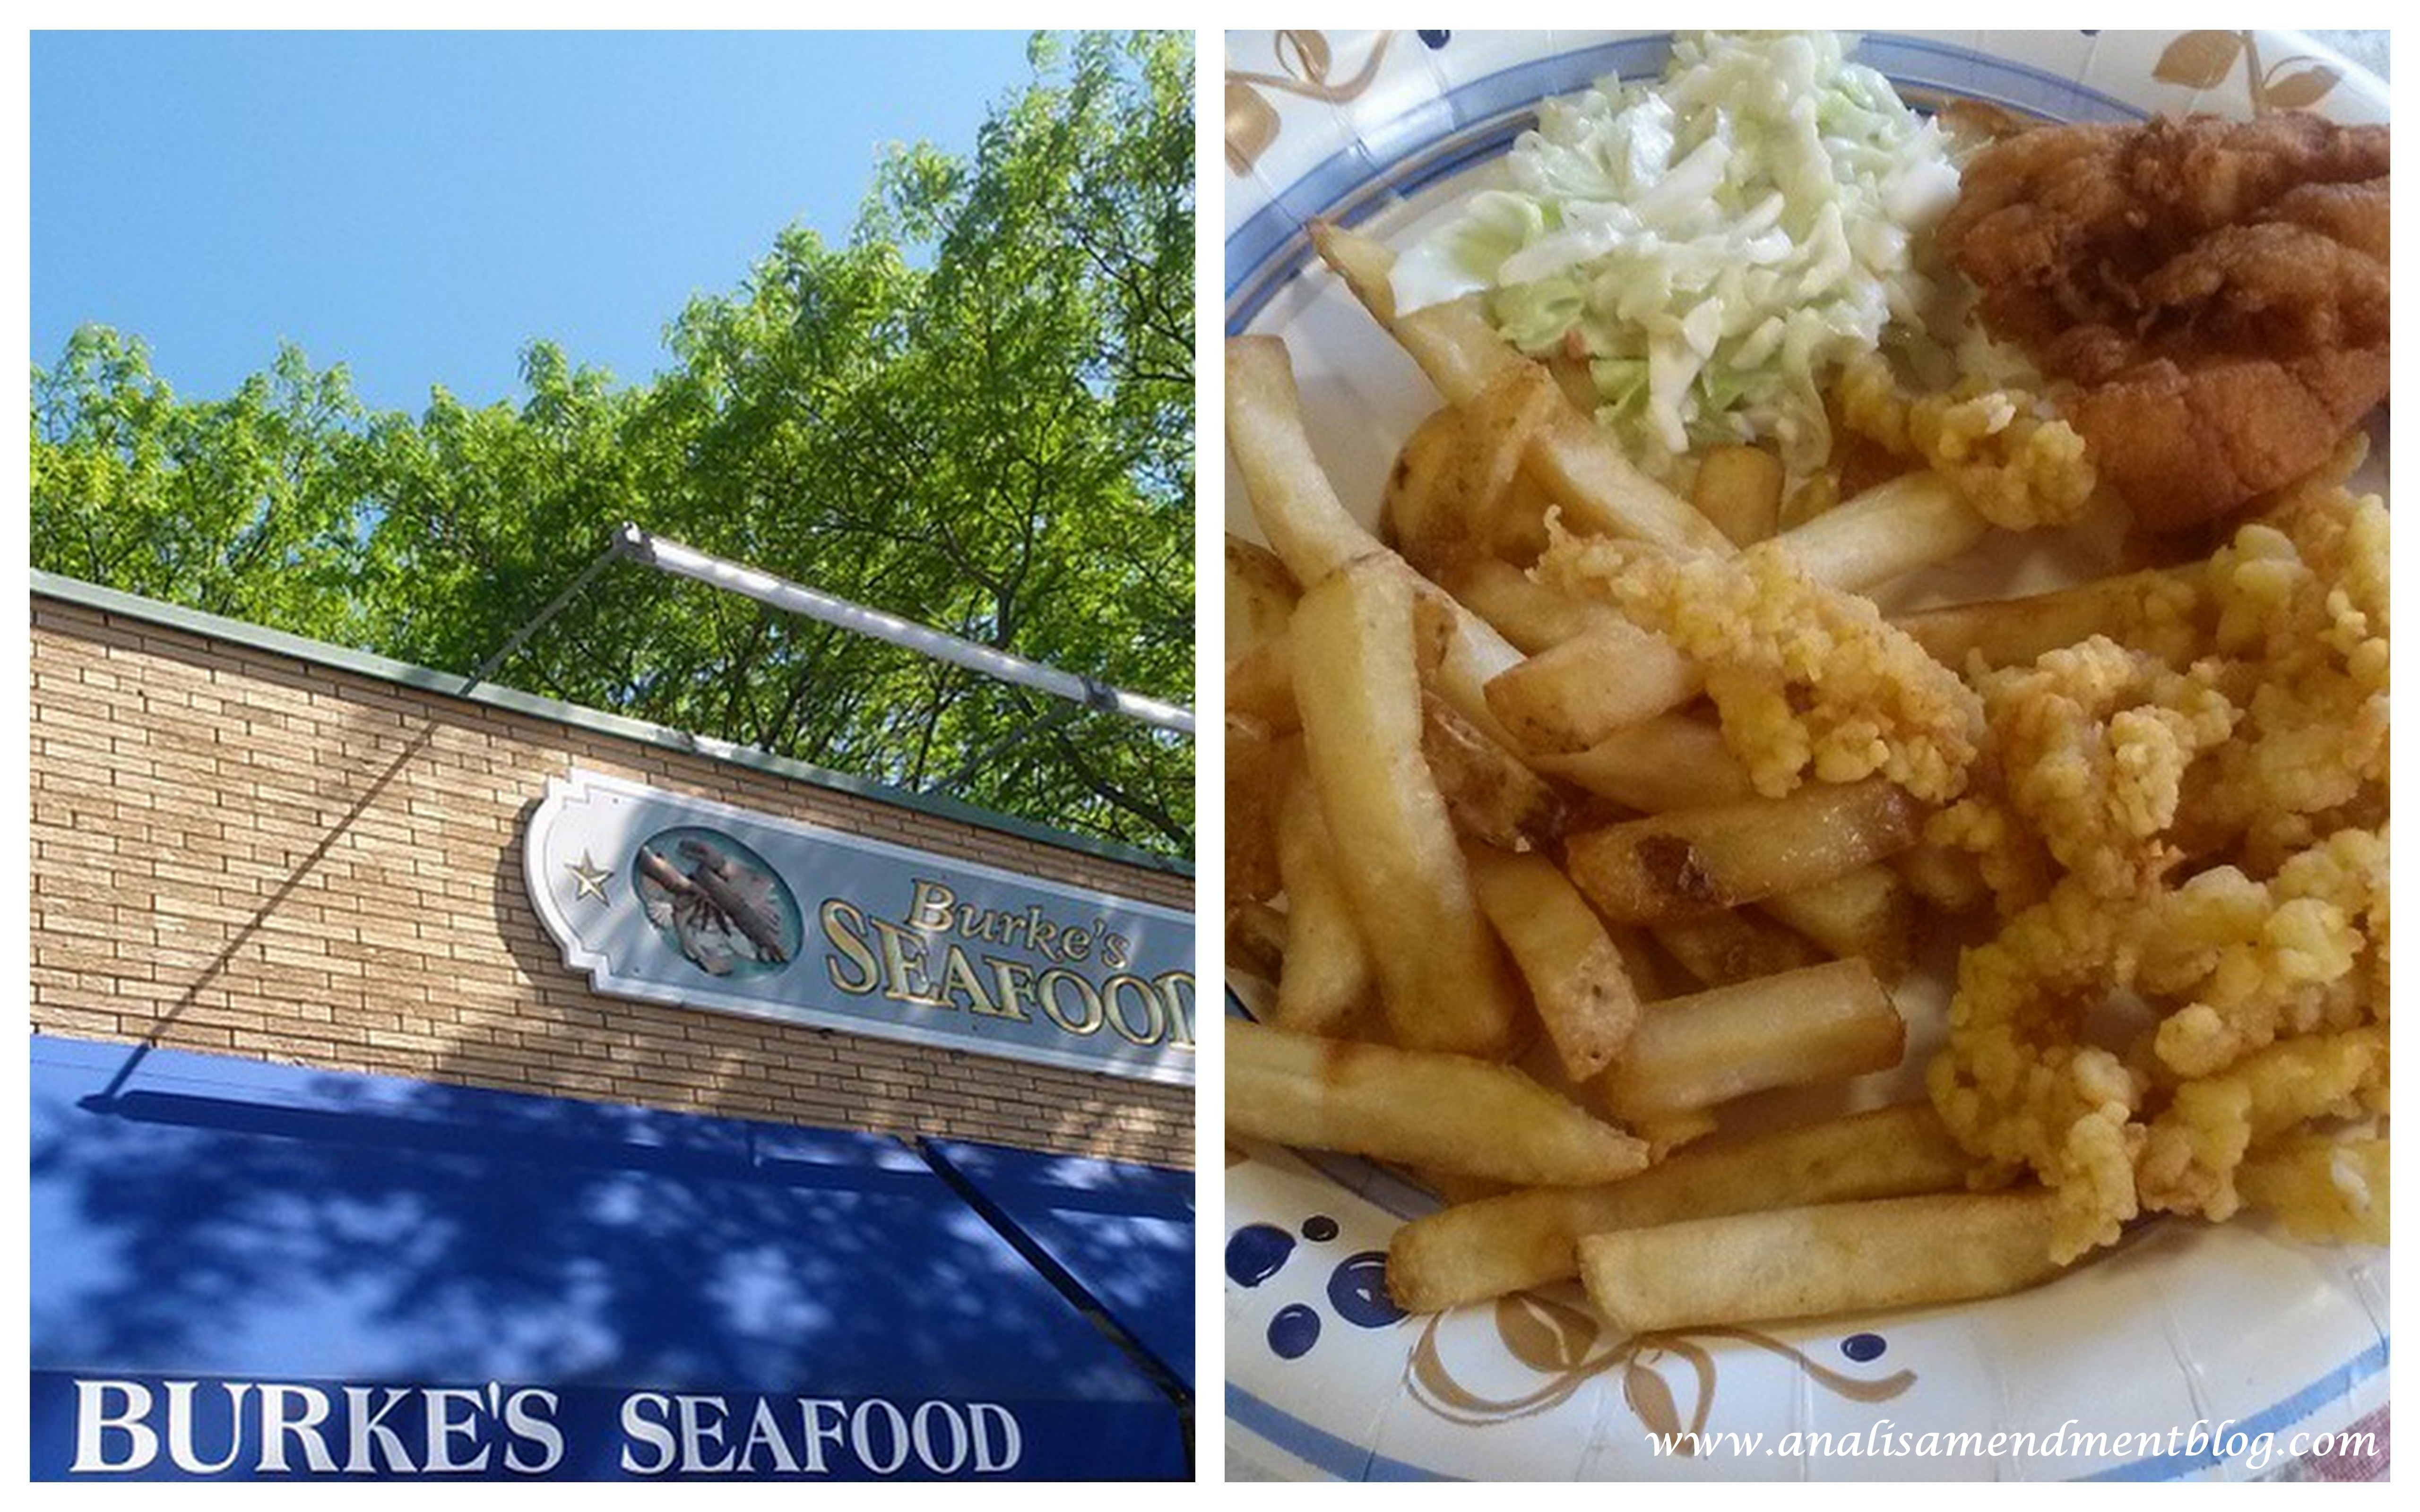 Burke's Seafood sign and seafood platter